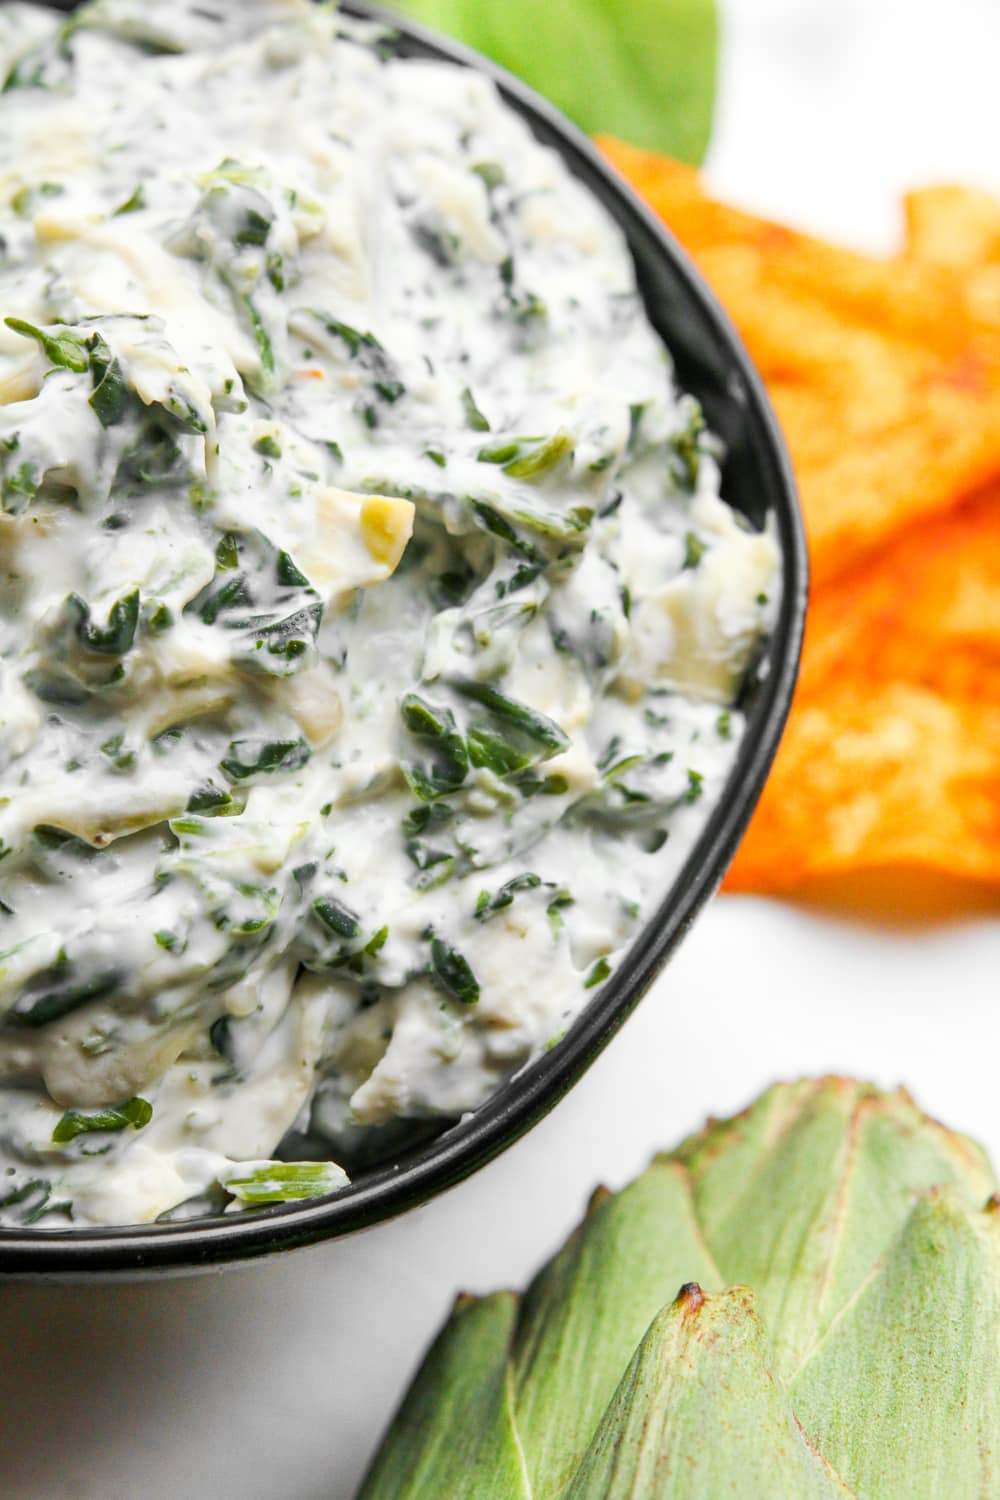 An up close view of low carb spinach and artichoke dip in a bowl.